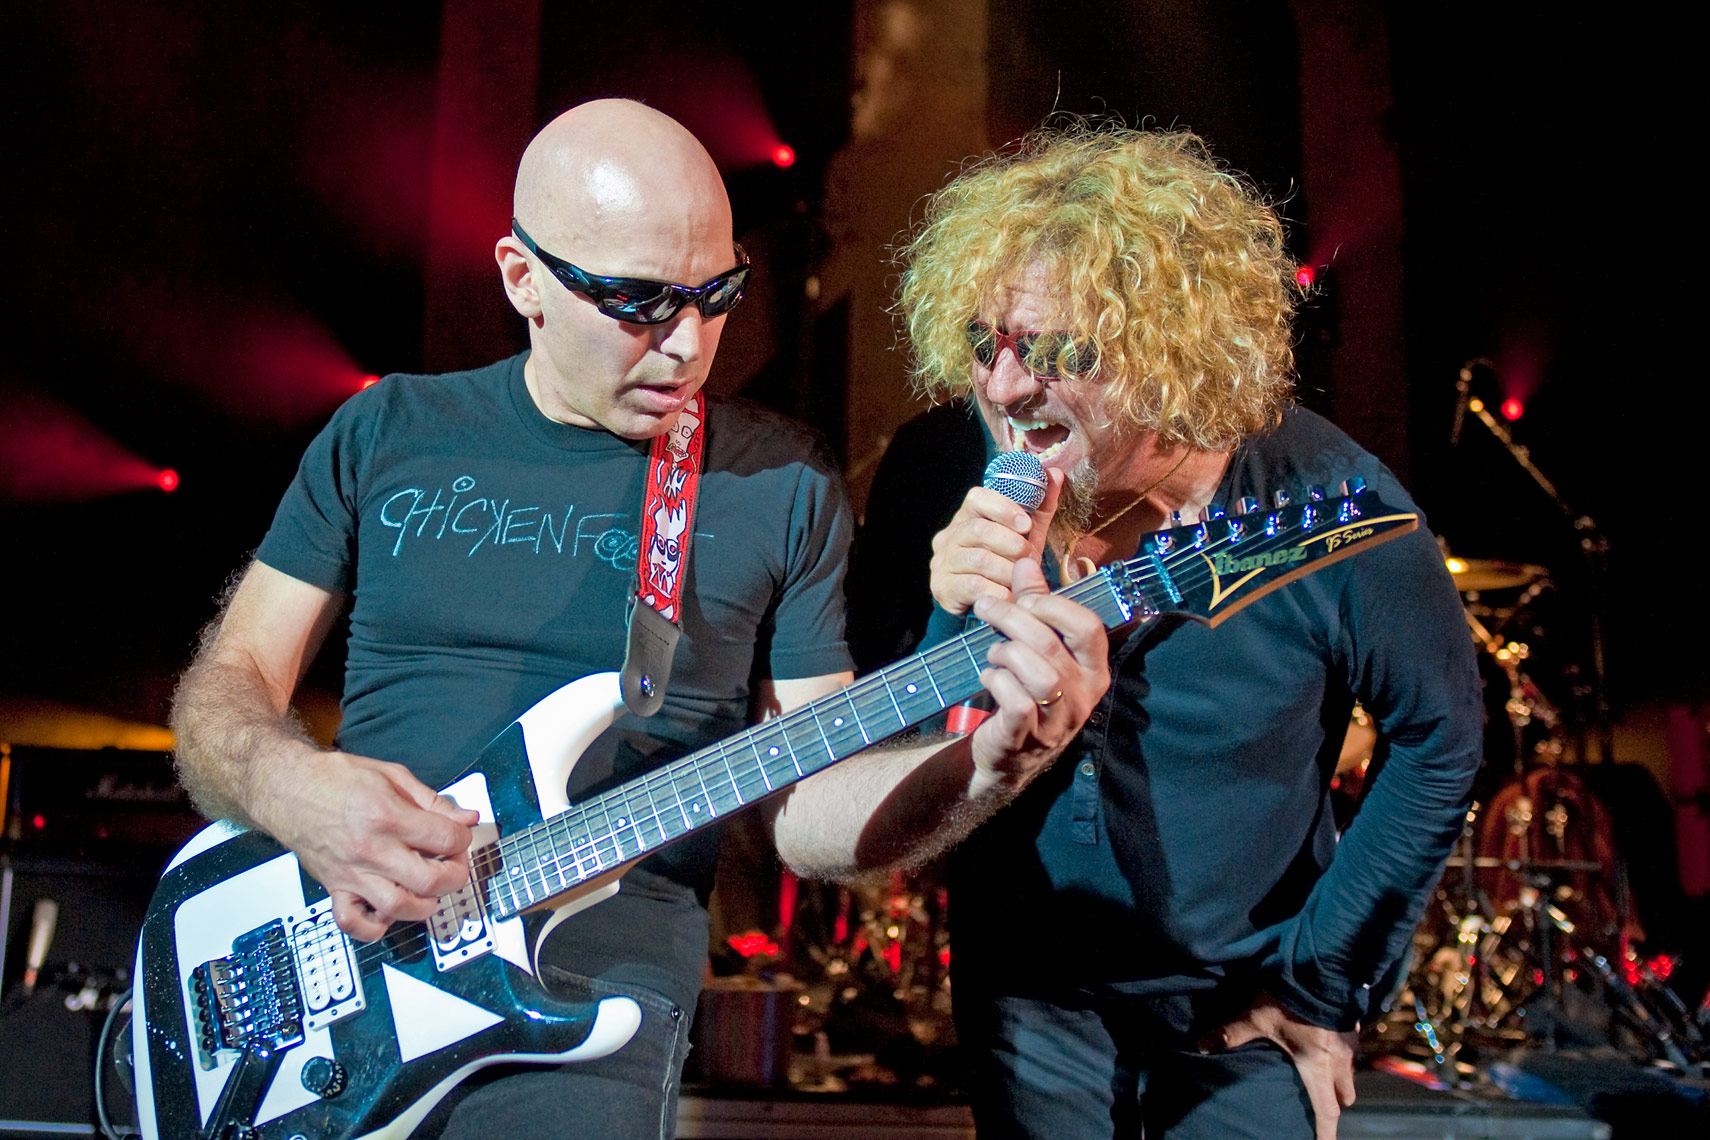 Joe-Satriani-and-Sammy-Hagar-Chickenfoot-Shepherds-Bush-Empire.jpg